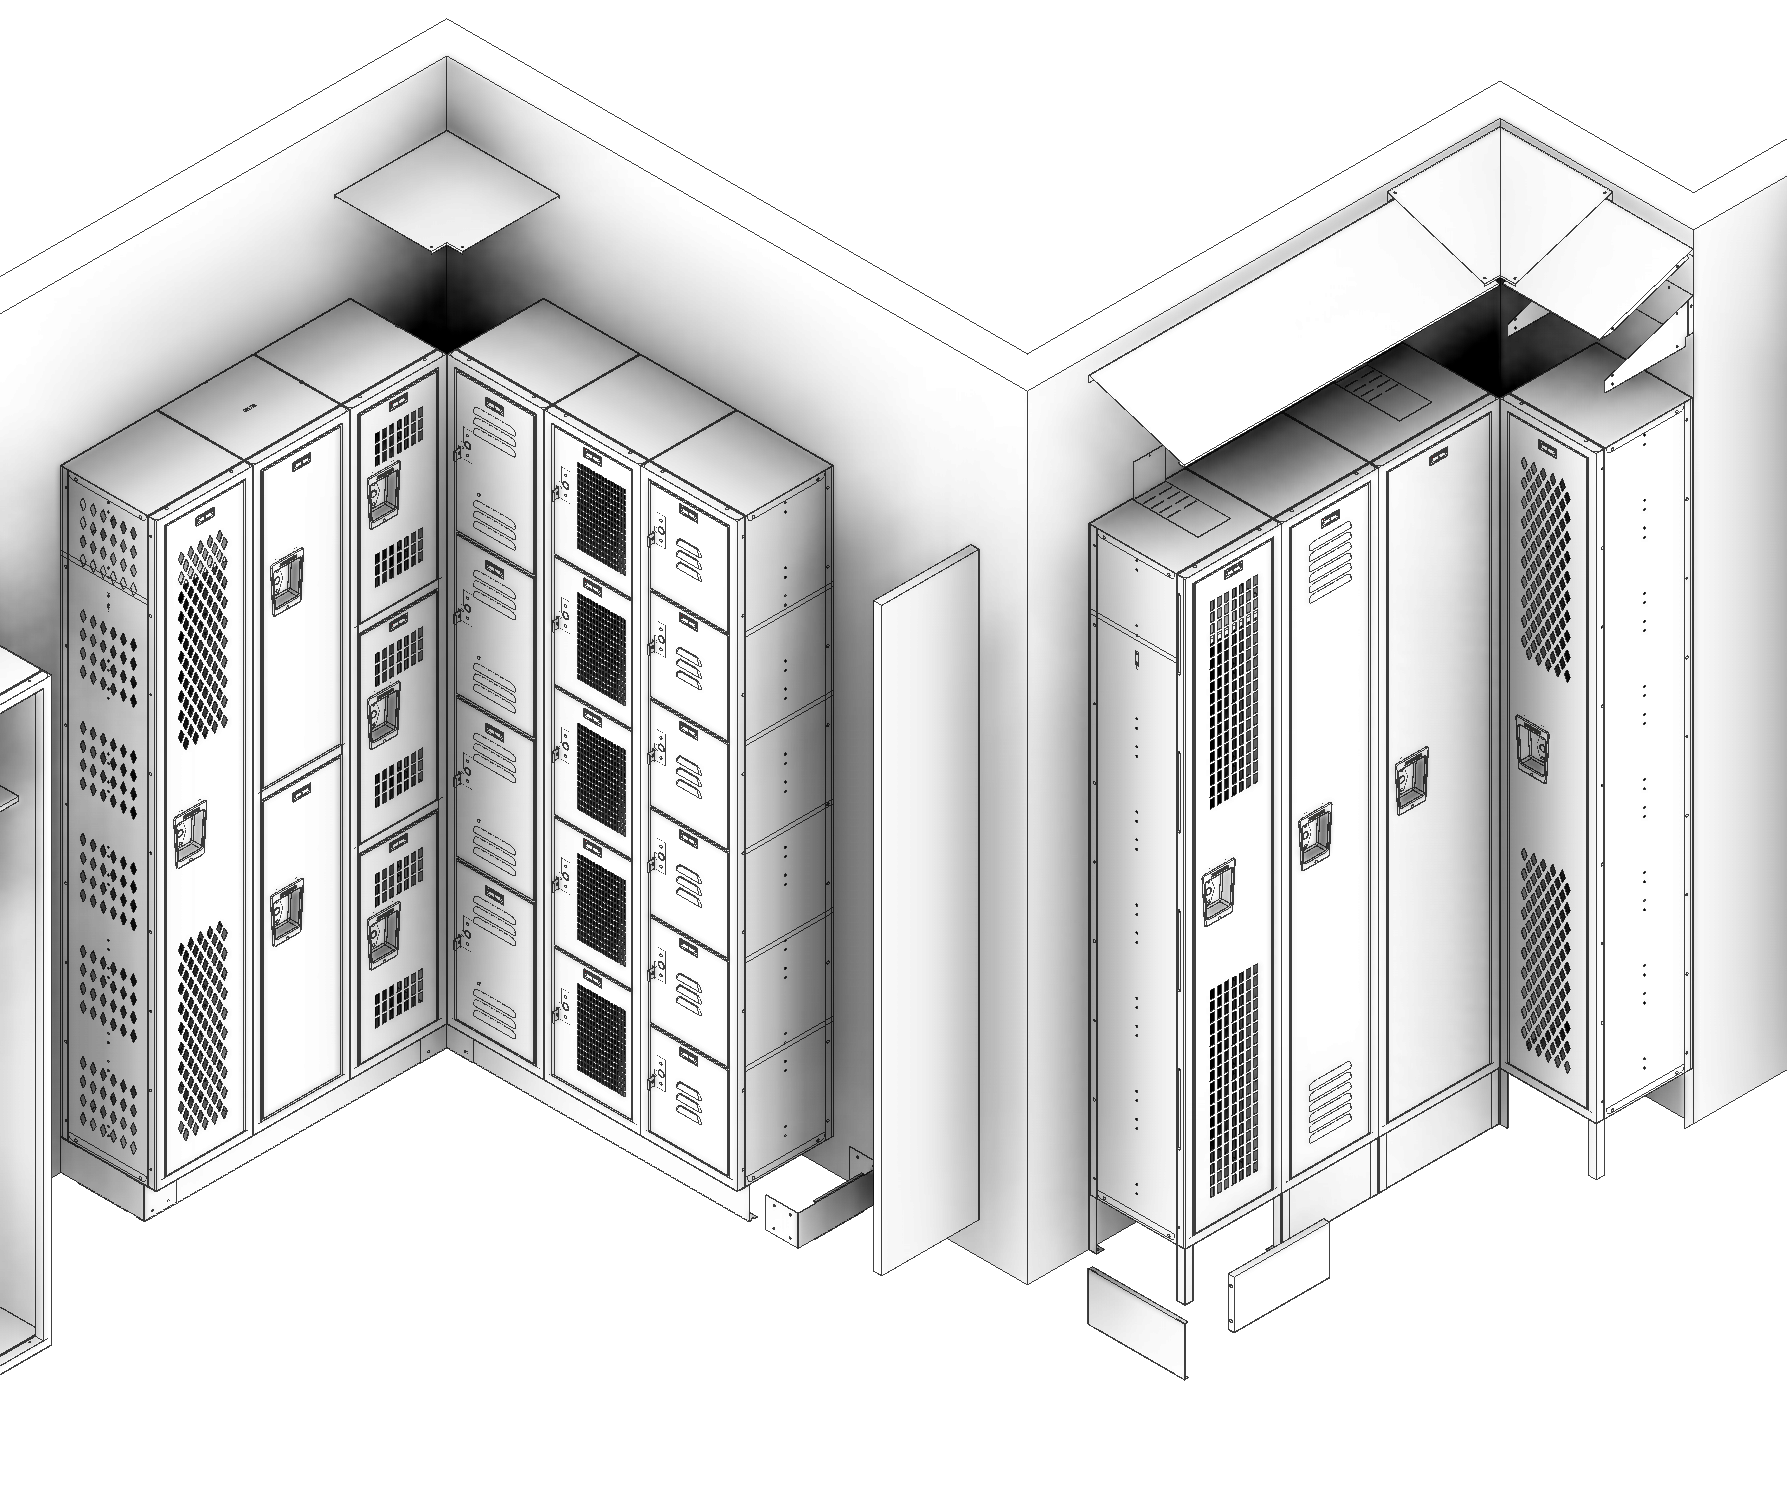 How to Assemble a Locker